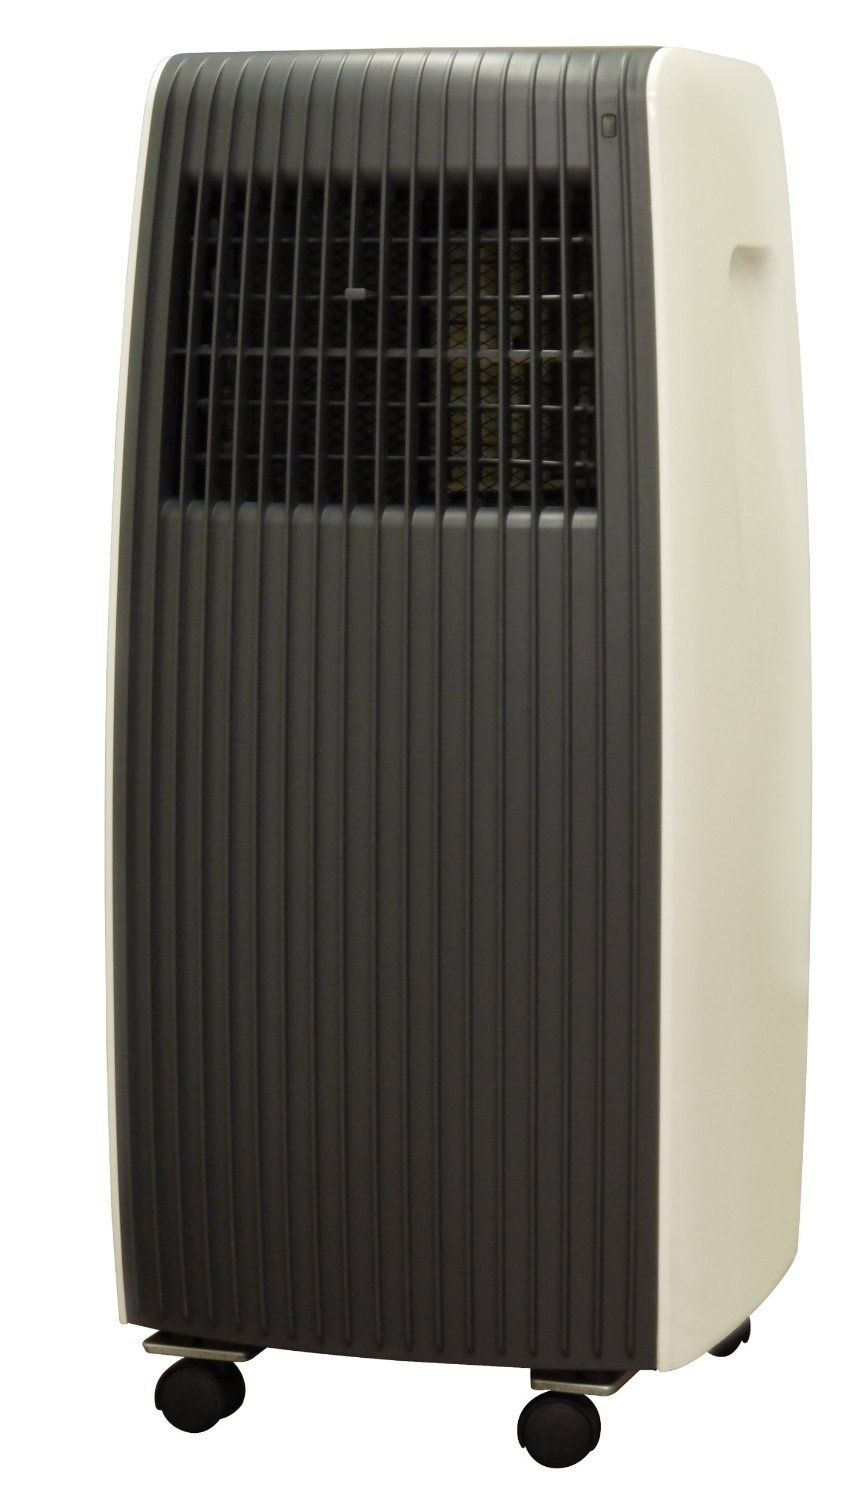 Cool Top 10 Best Portable Air Conditioner Reviews The Perfect Shopping Guide With Images Portable Air Conditioner Air Conditioner Units Portable Air Conditioners